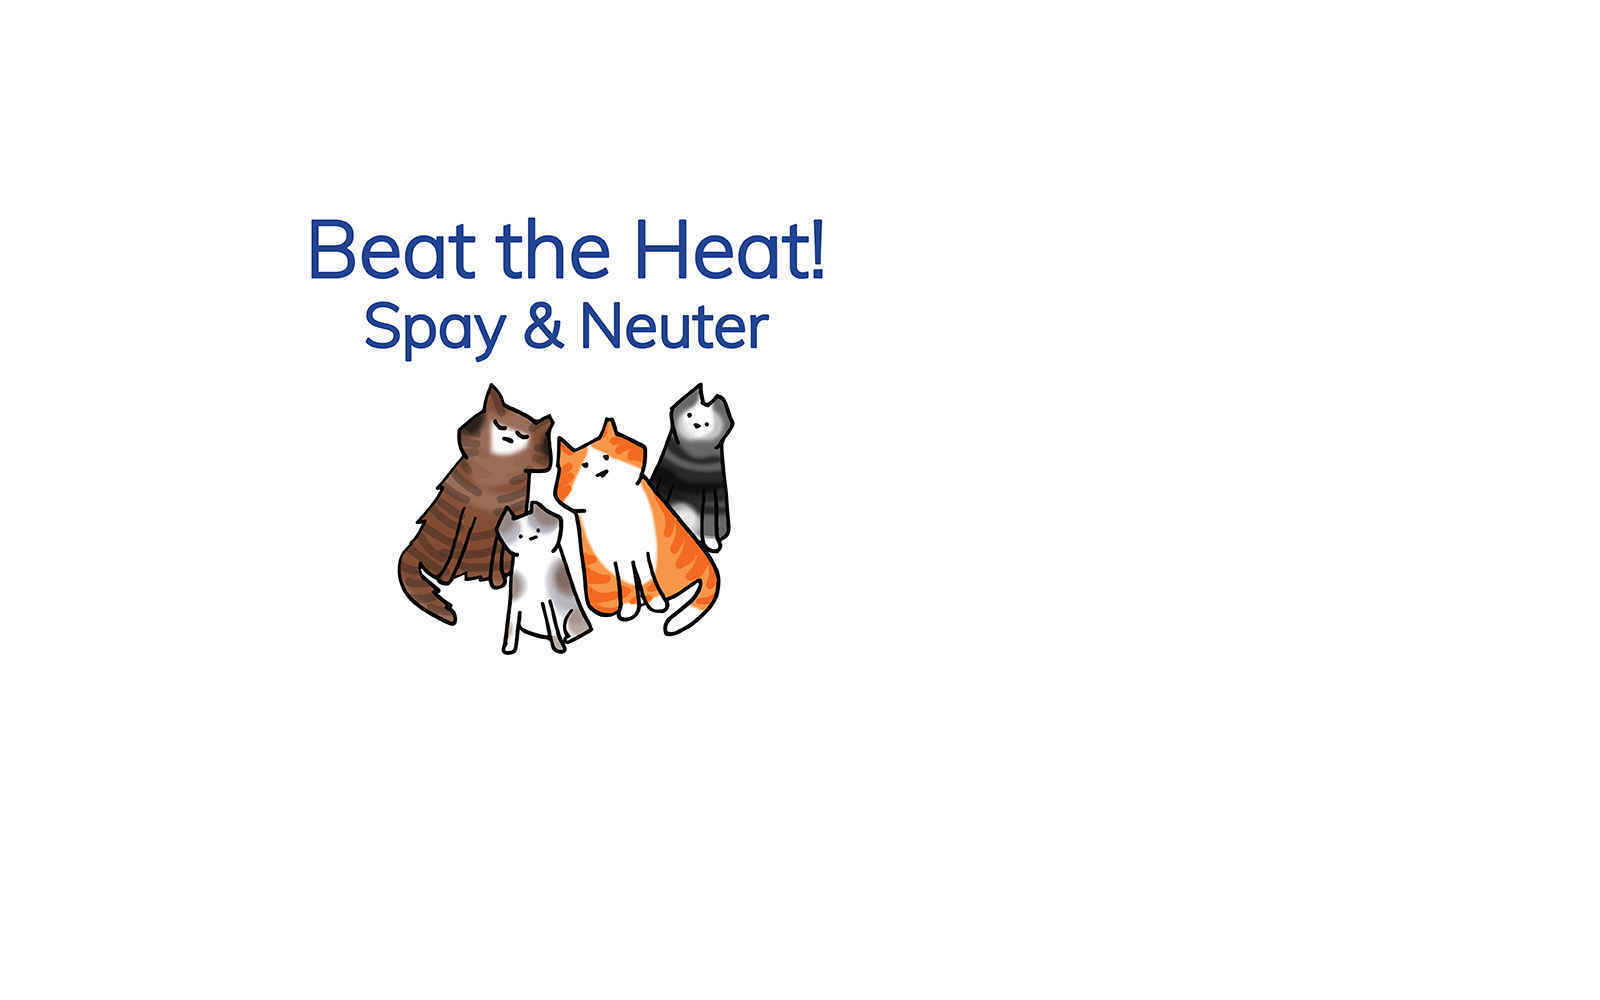 Beat the Heat 2019 image